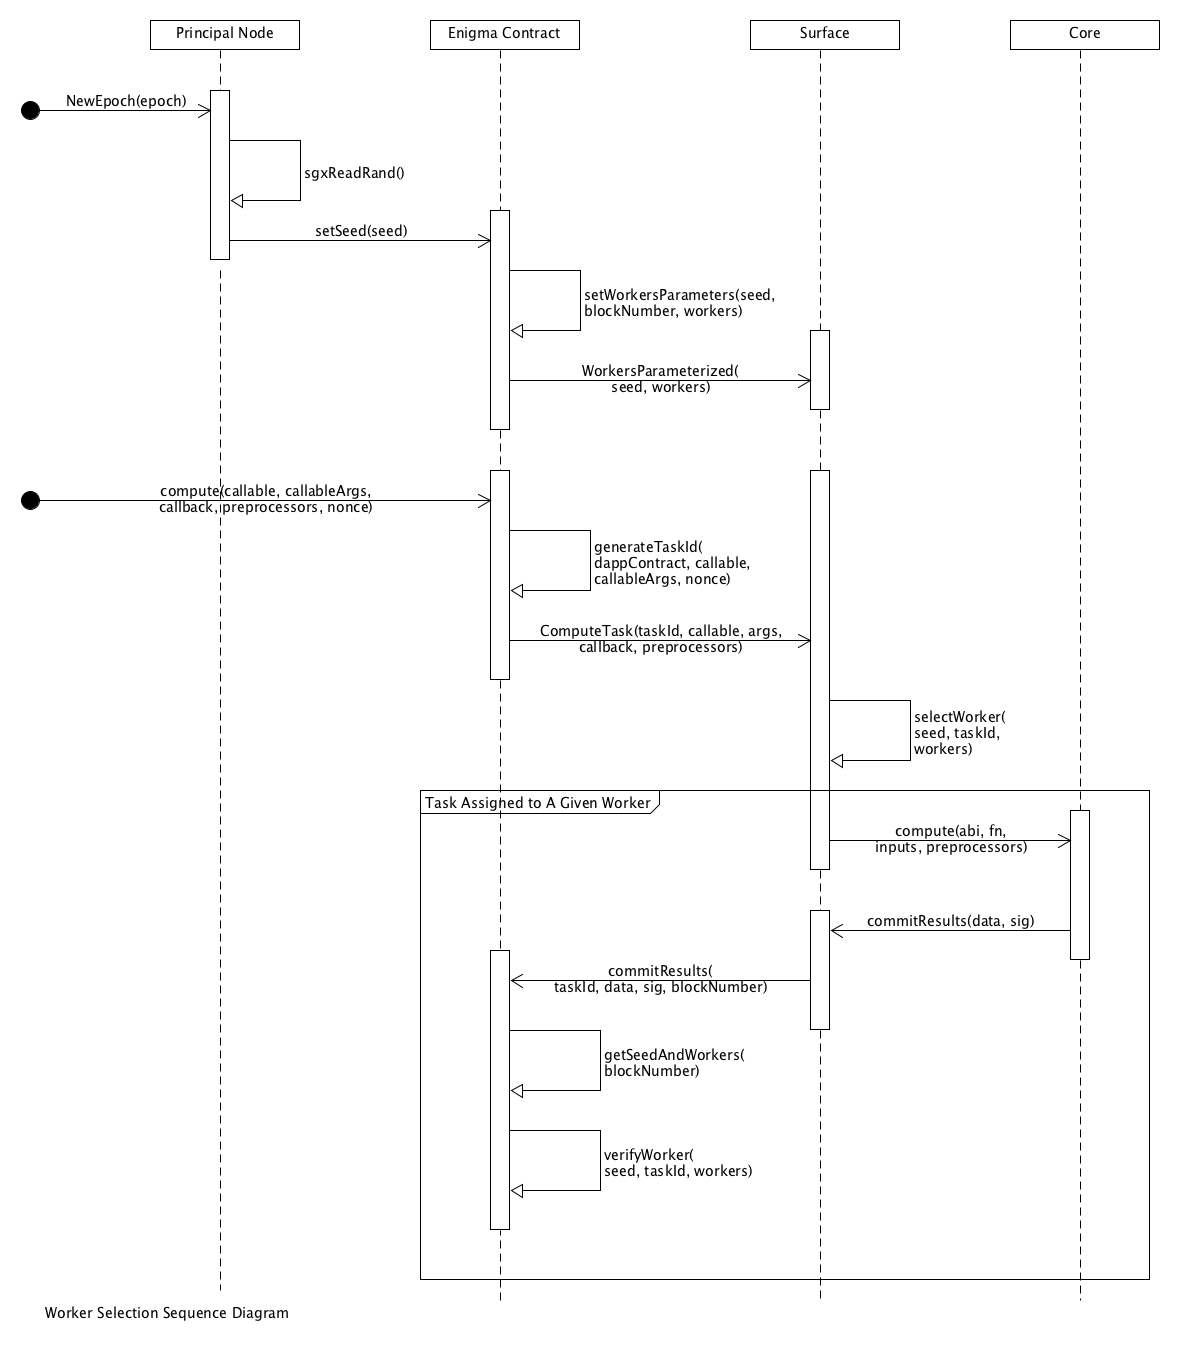 Worker Selection Sequence Diagram